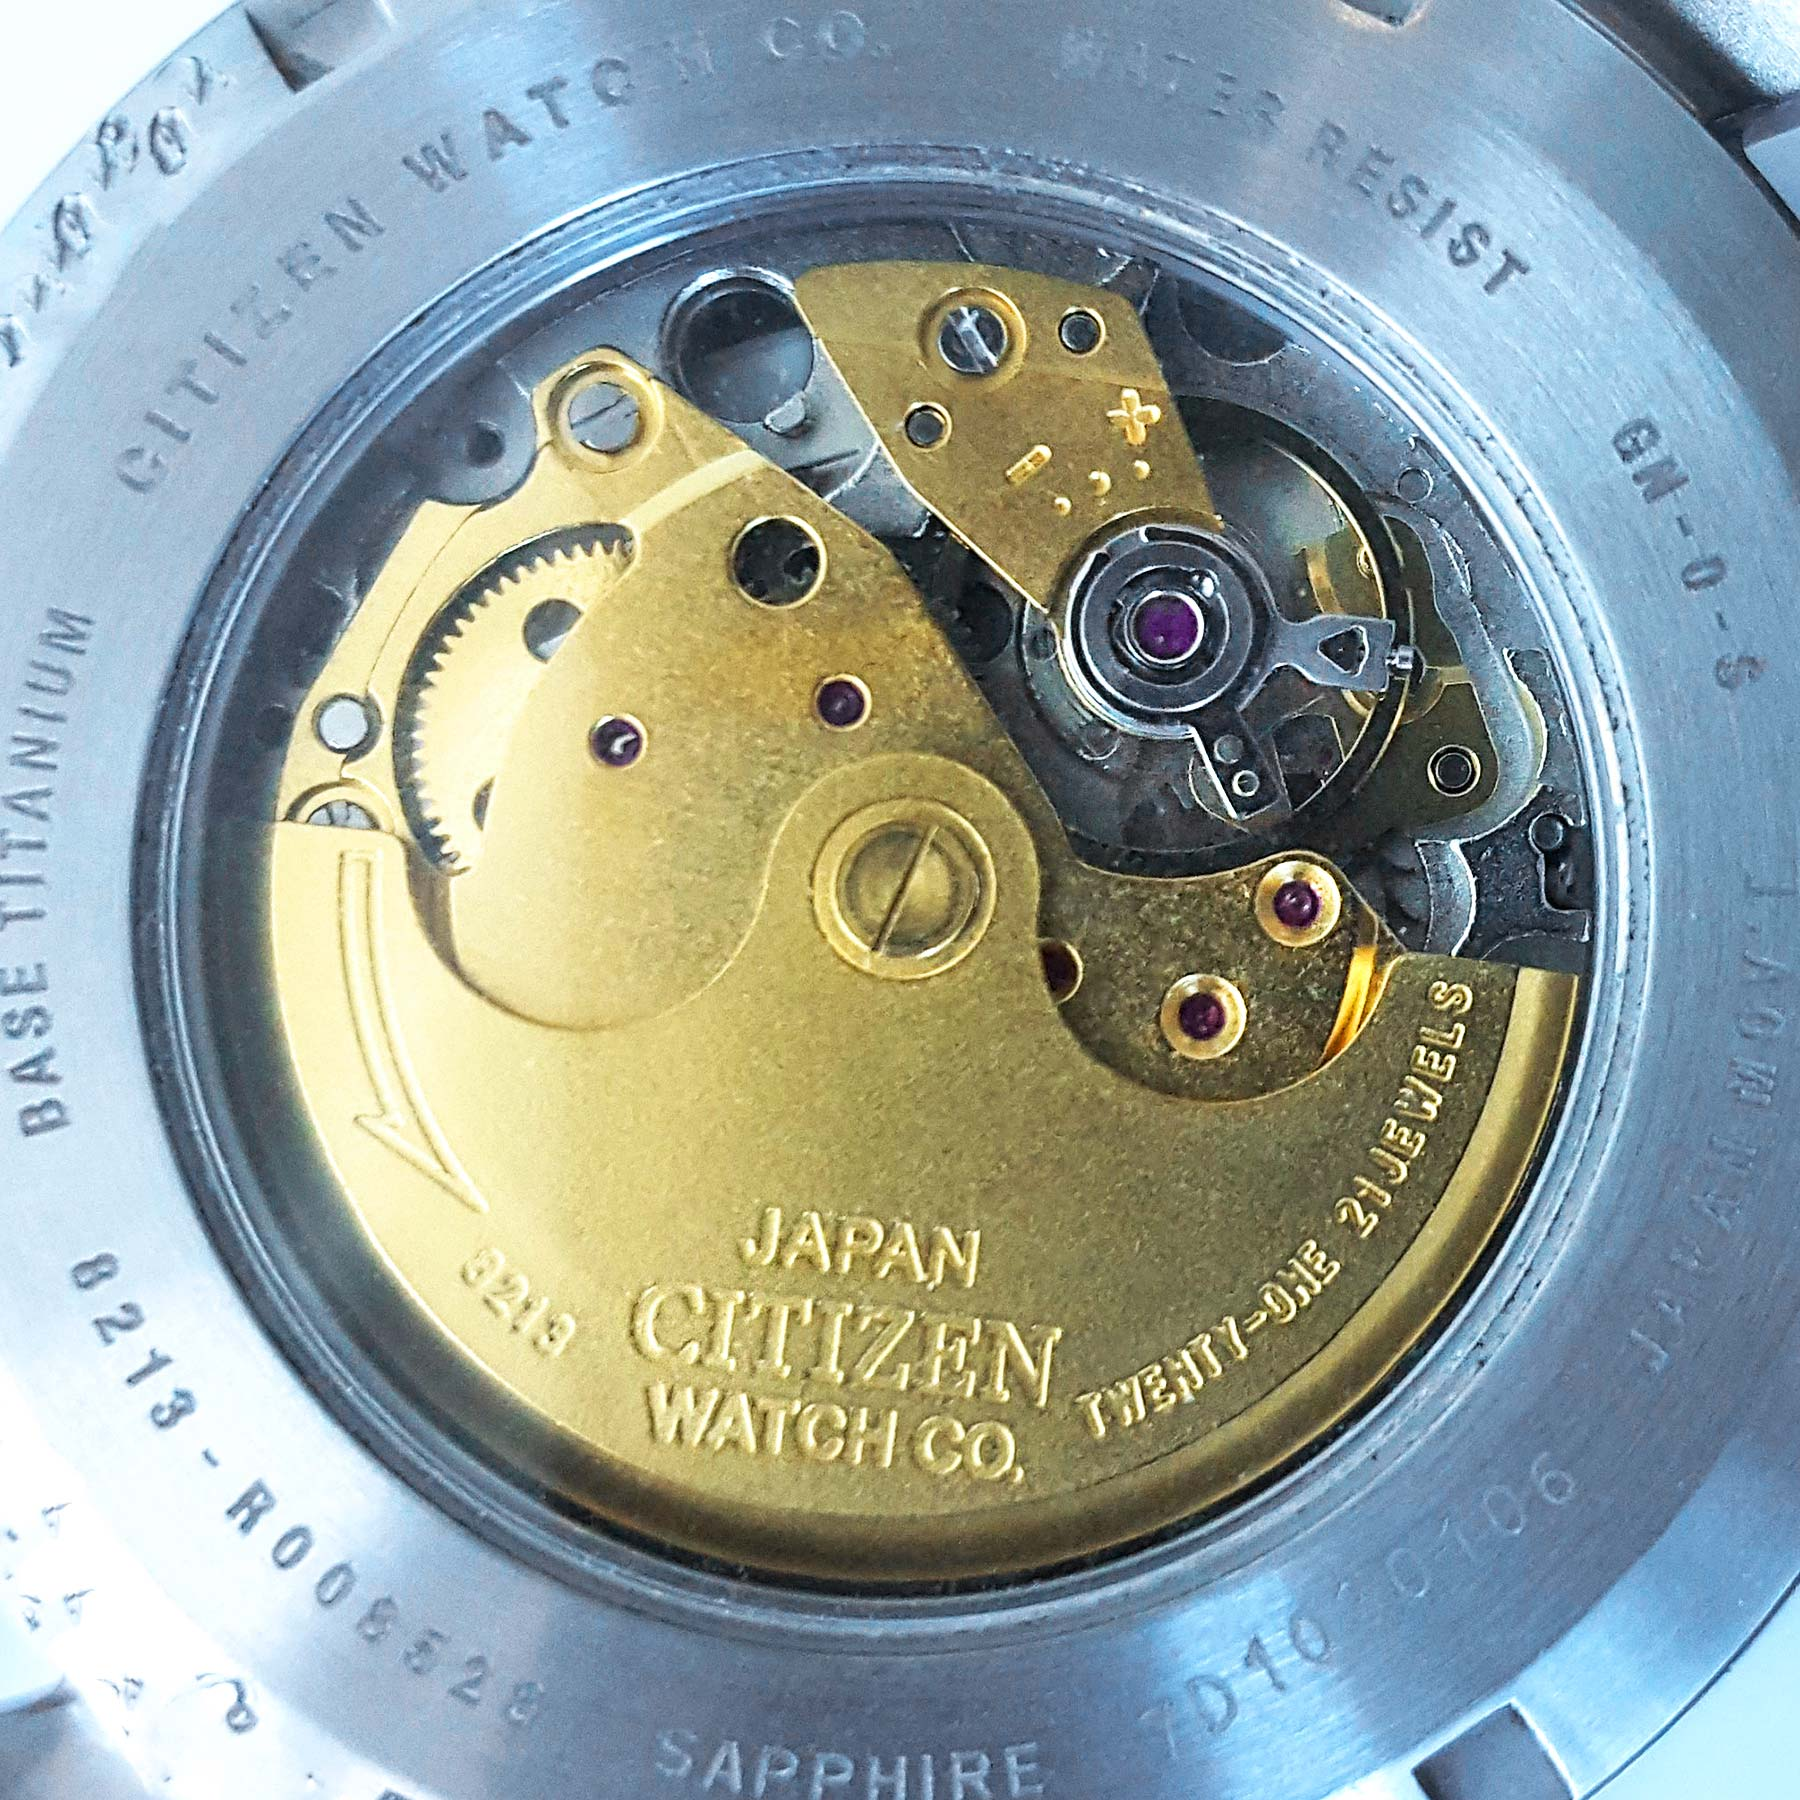 Citizen Caliber 8213